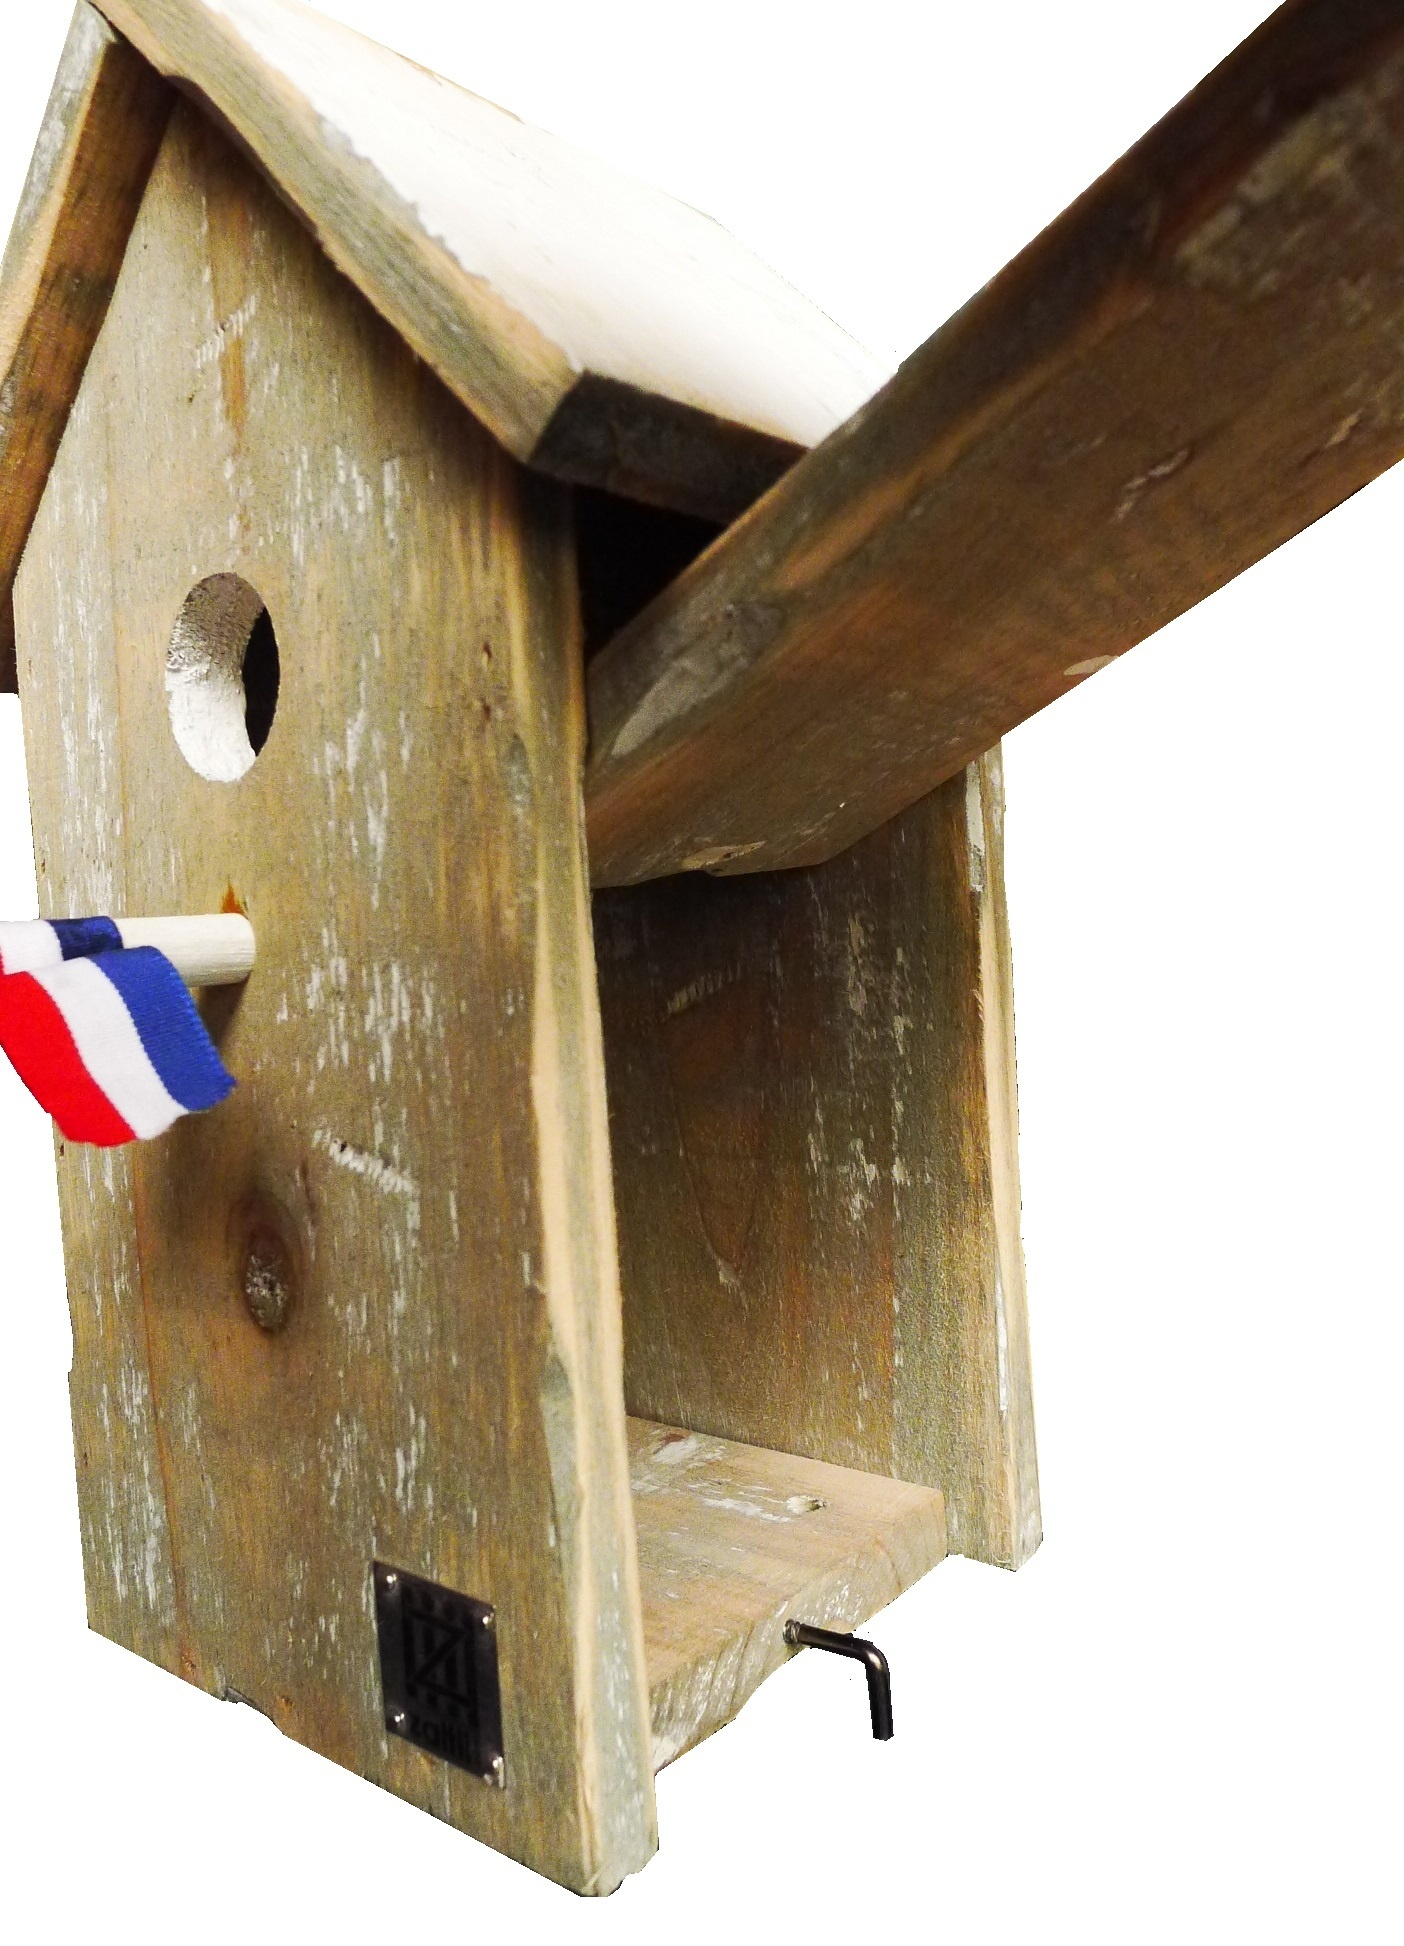 birdhouse old dutch stB pointed roof-9